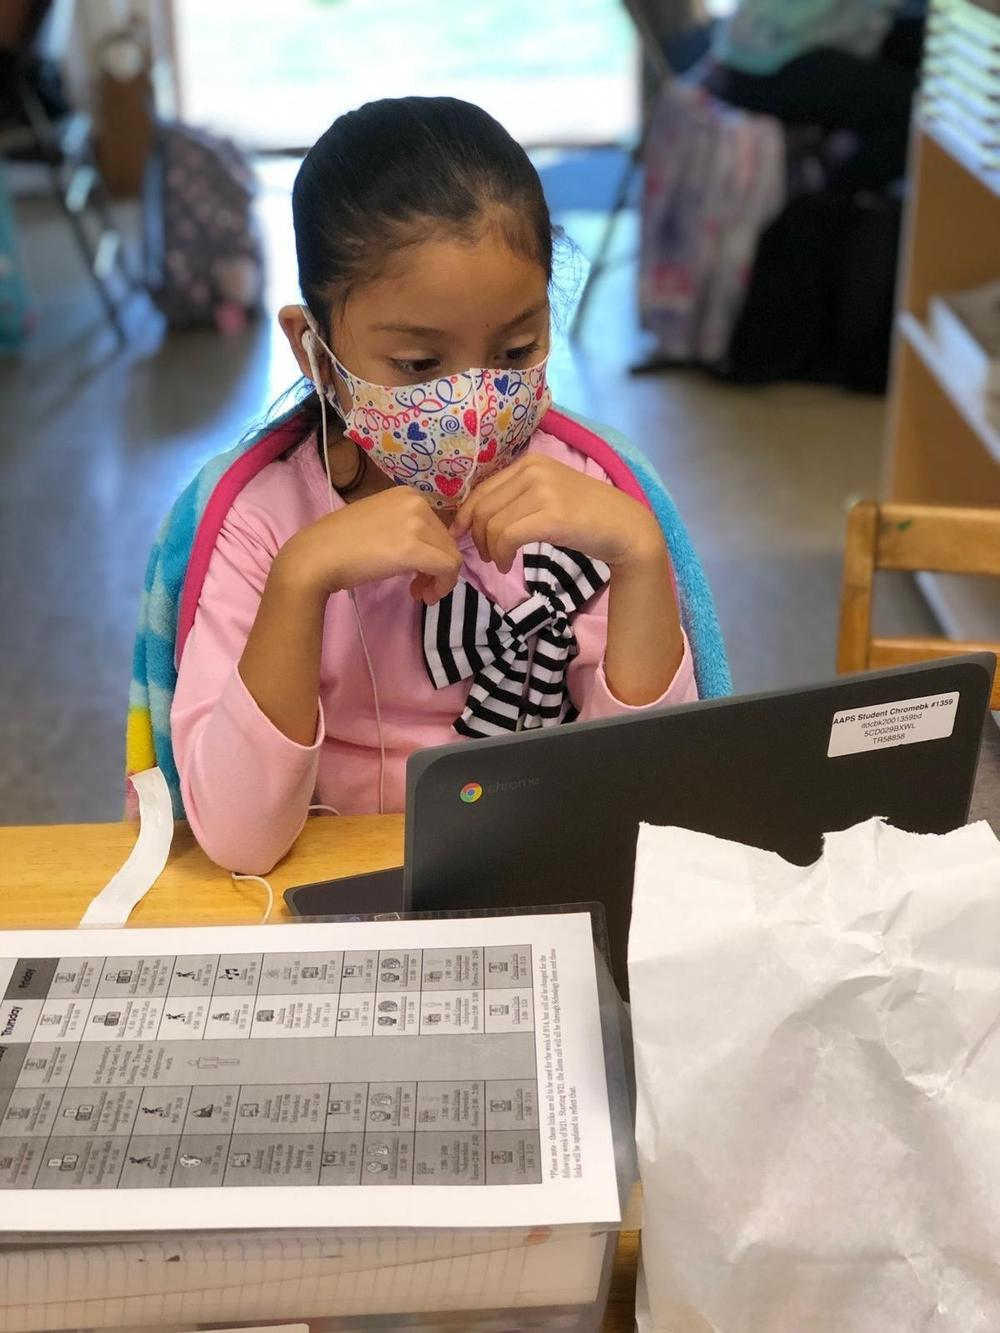 Angelique, a third grader, follows her afternoon virtual classes on an iPad at the Ann Arbor Community Learning Center, A learning hub helping the children of undocumented families attend to their virtual classes while their parents go to work.